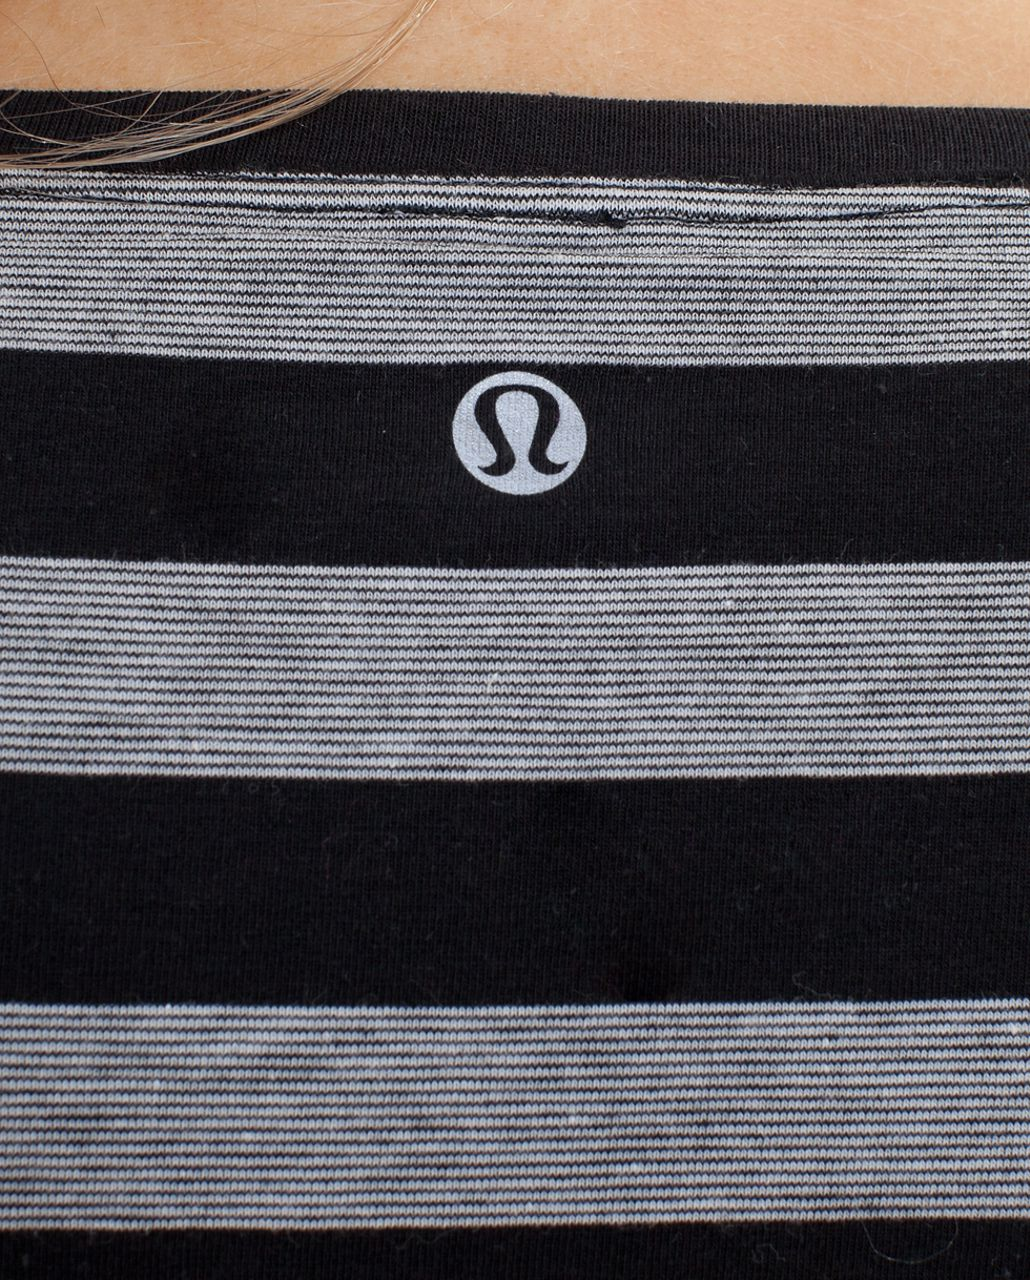 Lululemon Cabin Long Sleeve Tee II - Black Black Micro Macro Stripe /  Black